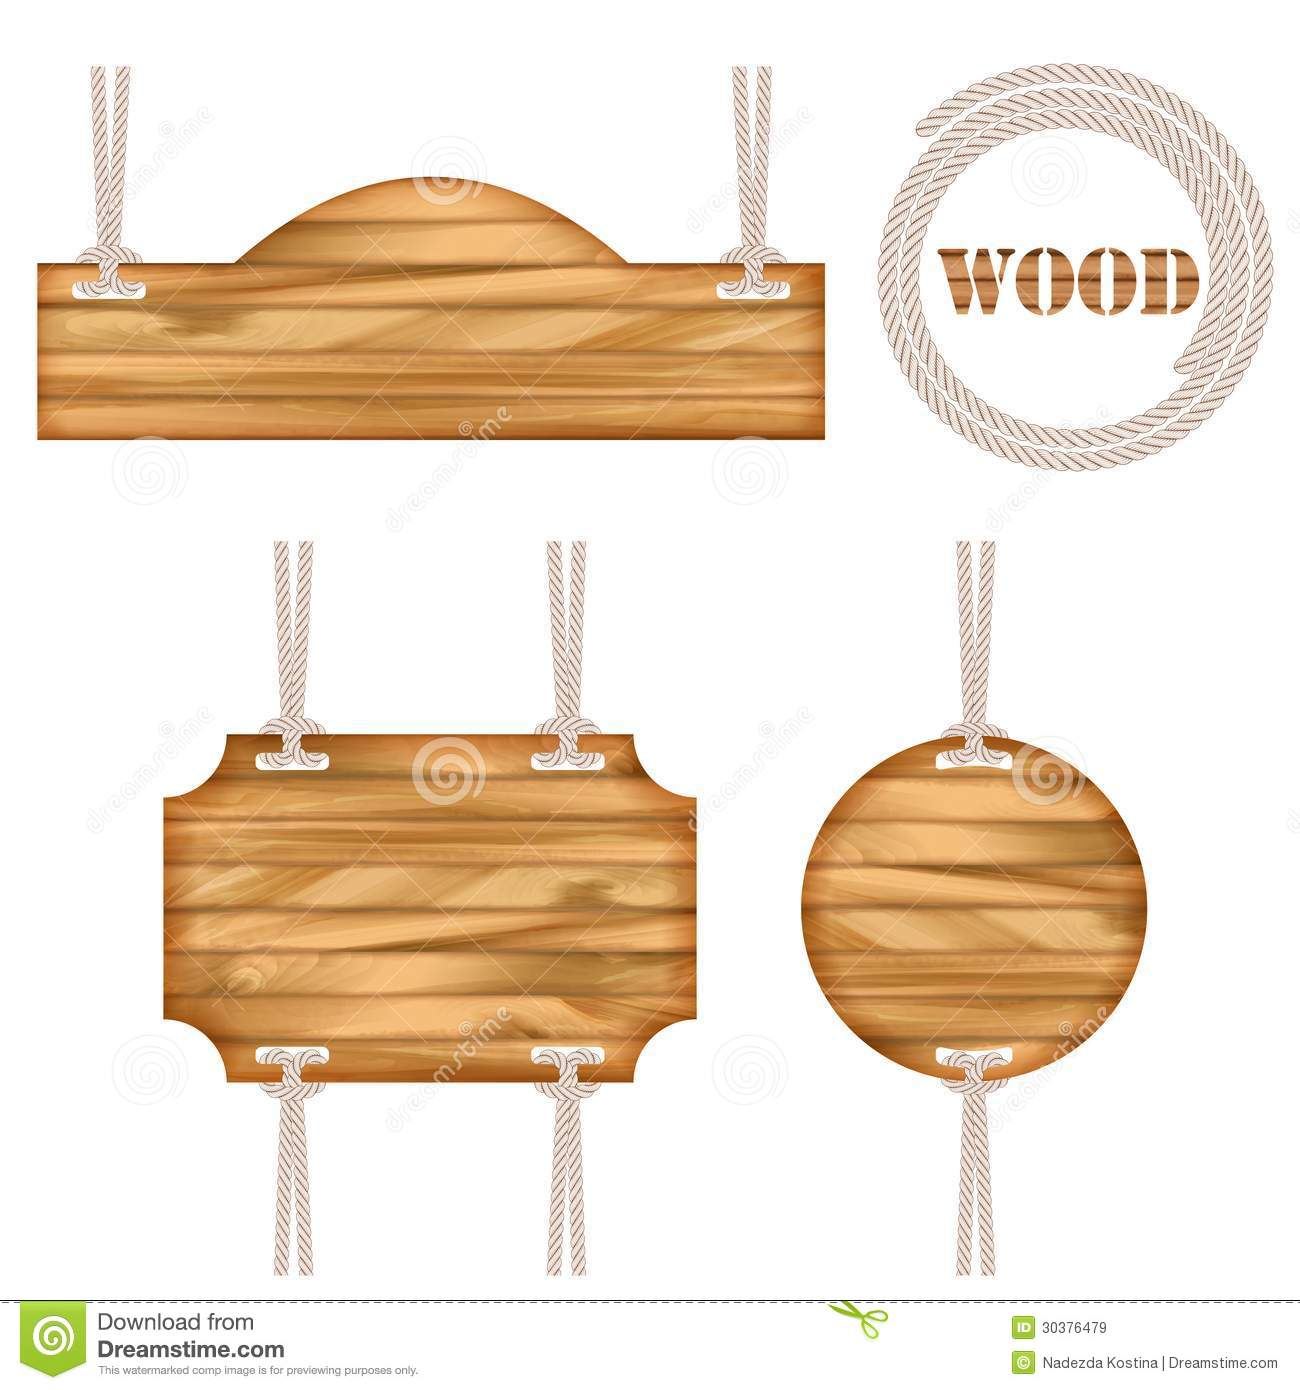 Wooden Design Clipart 20 Free Cliparts Download Images